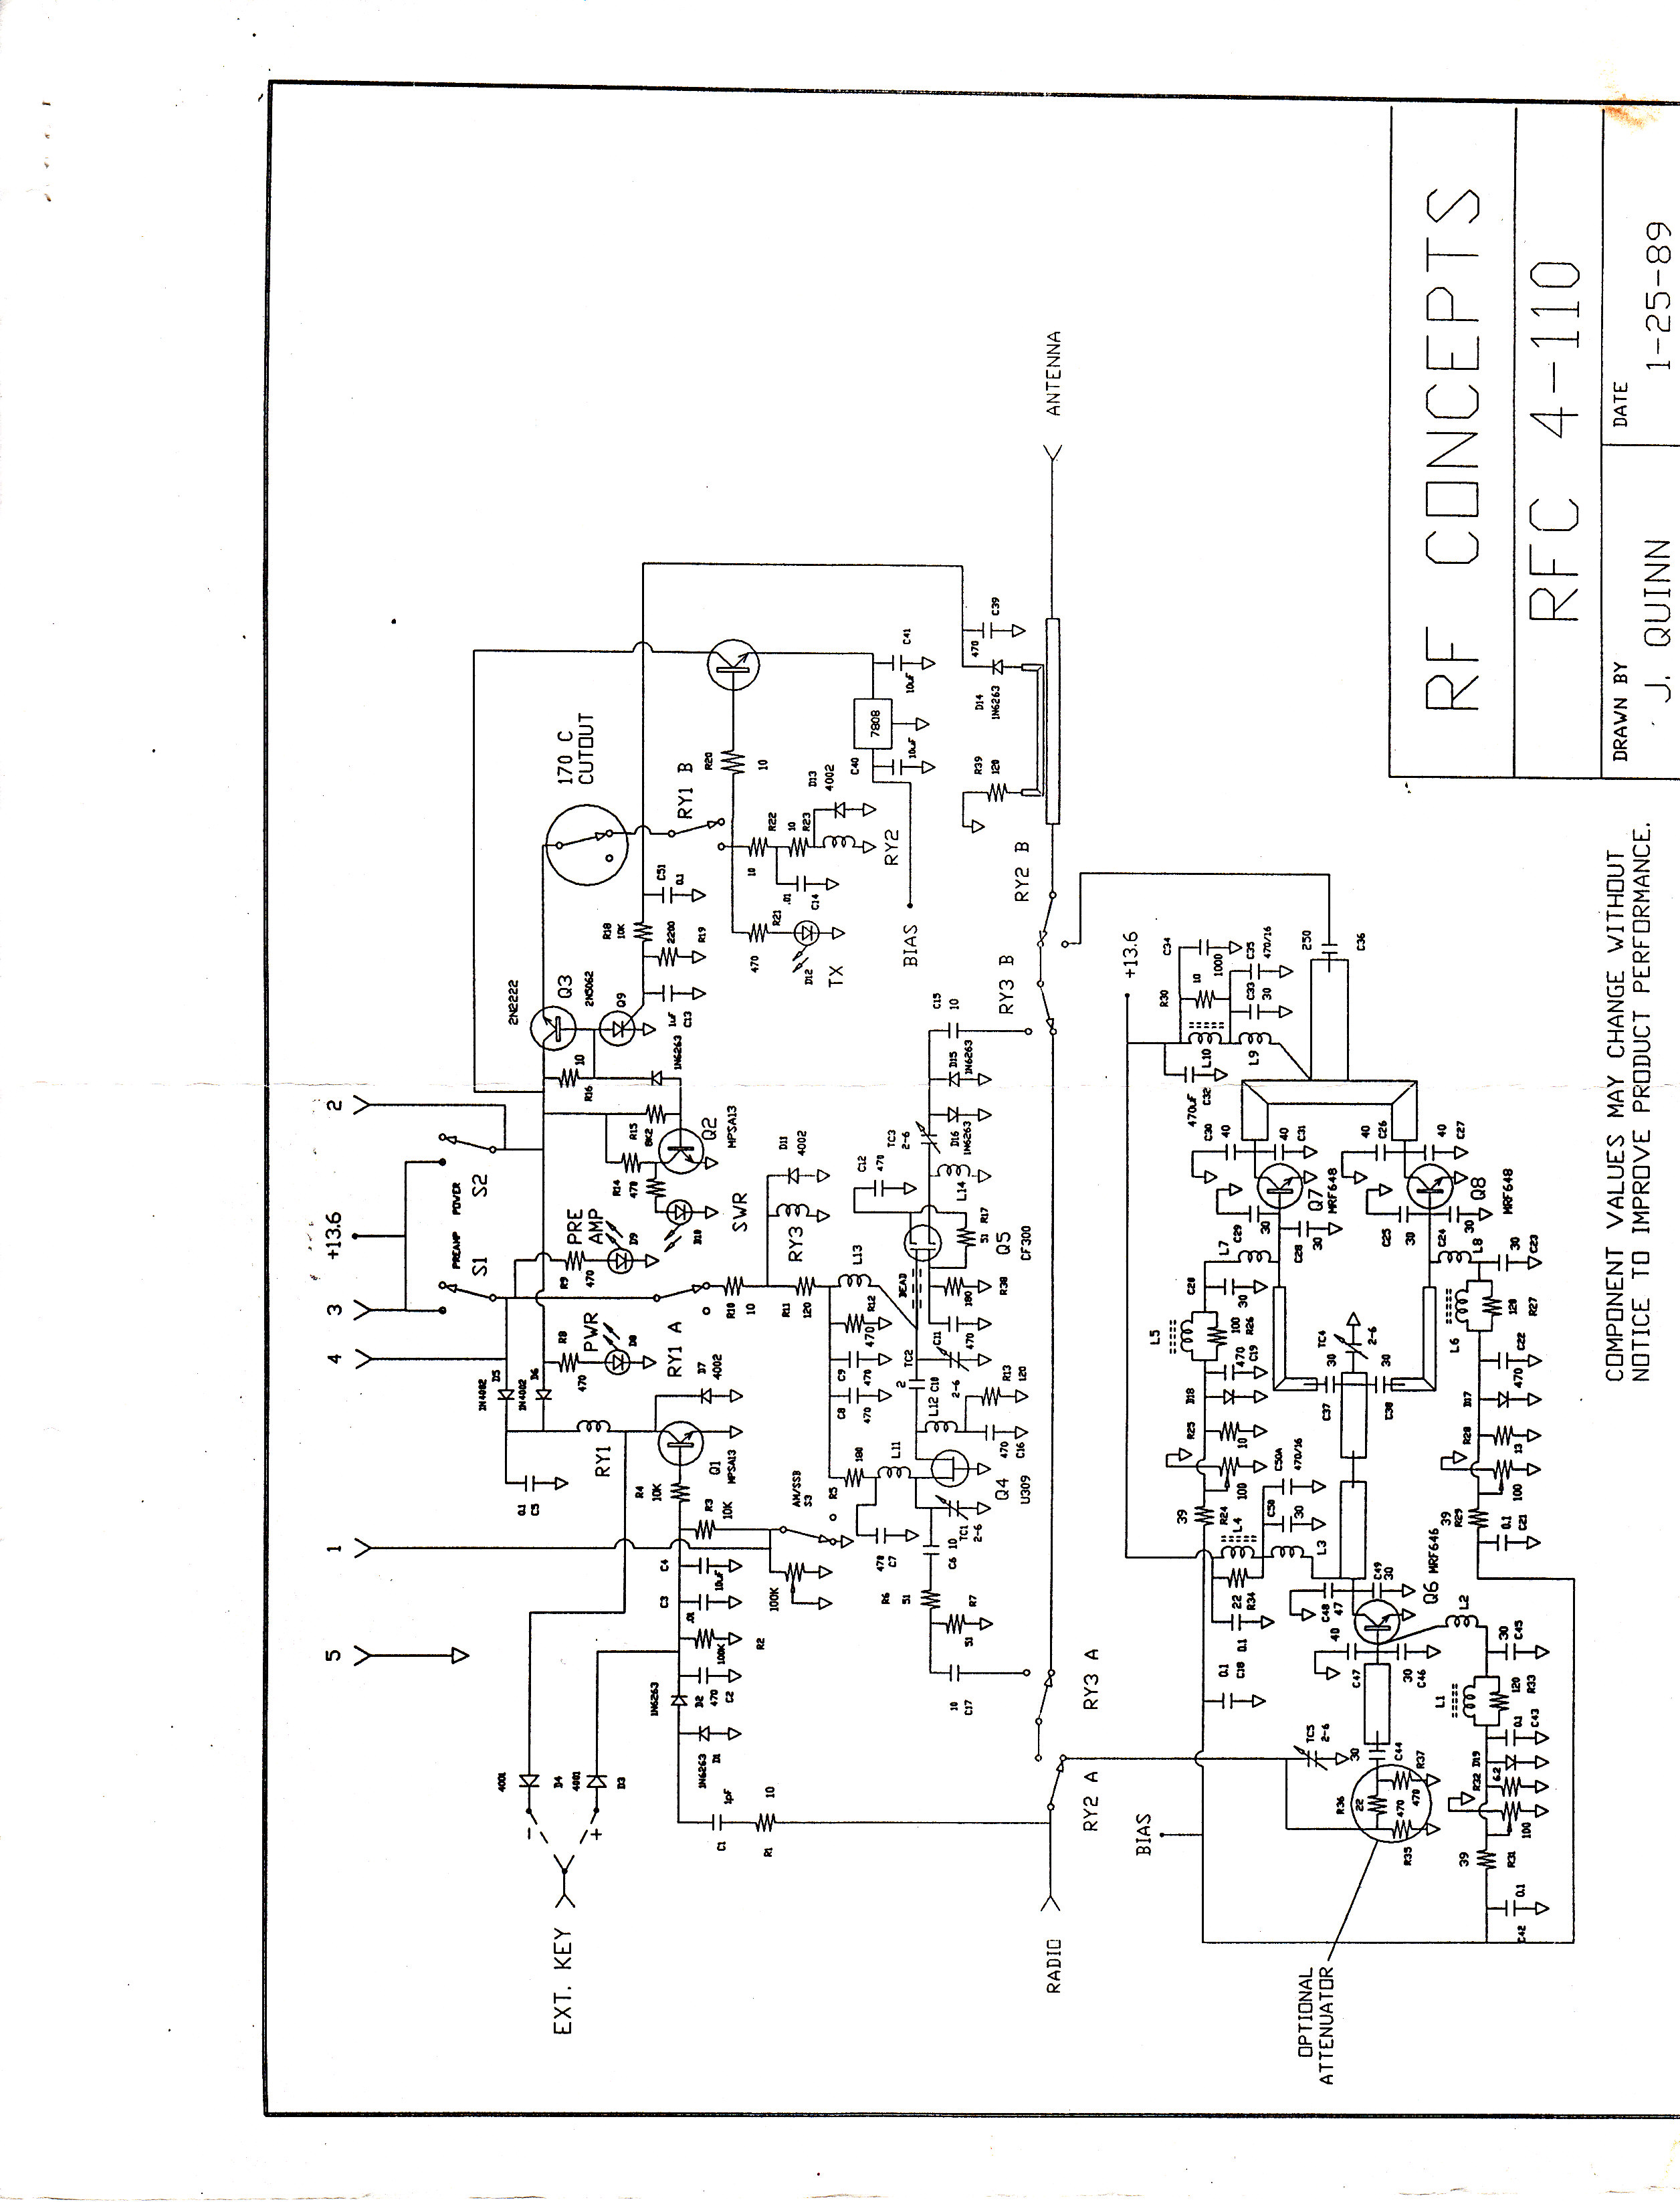 Mmt and sinclabs transverters st144 28 and st220 48 144 mhz 222 mhz manual for rf concepts rfc 4 110 lifier at whirlpool 465 oven wiring schematic